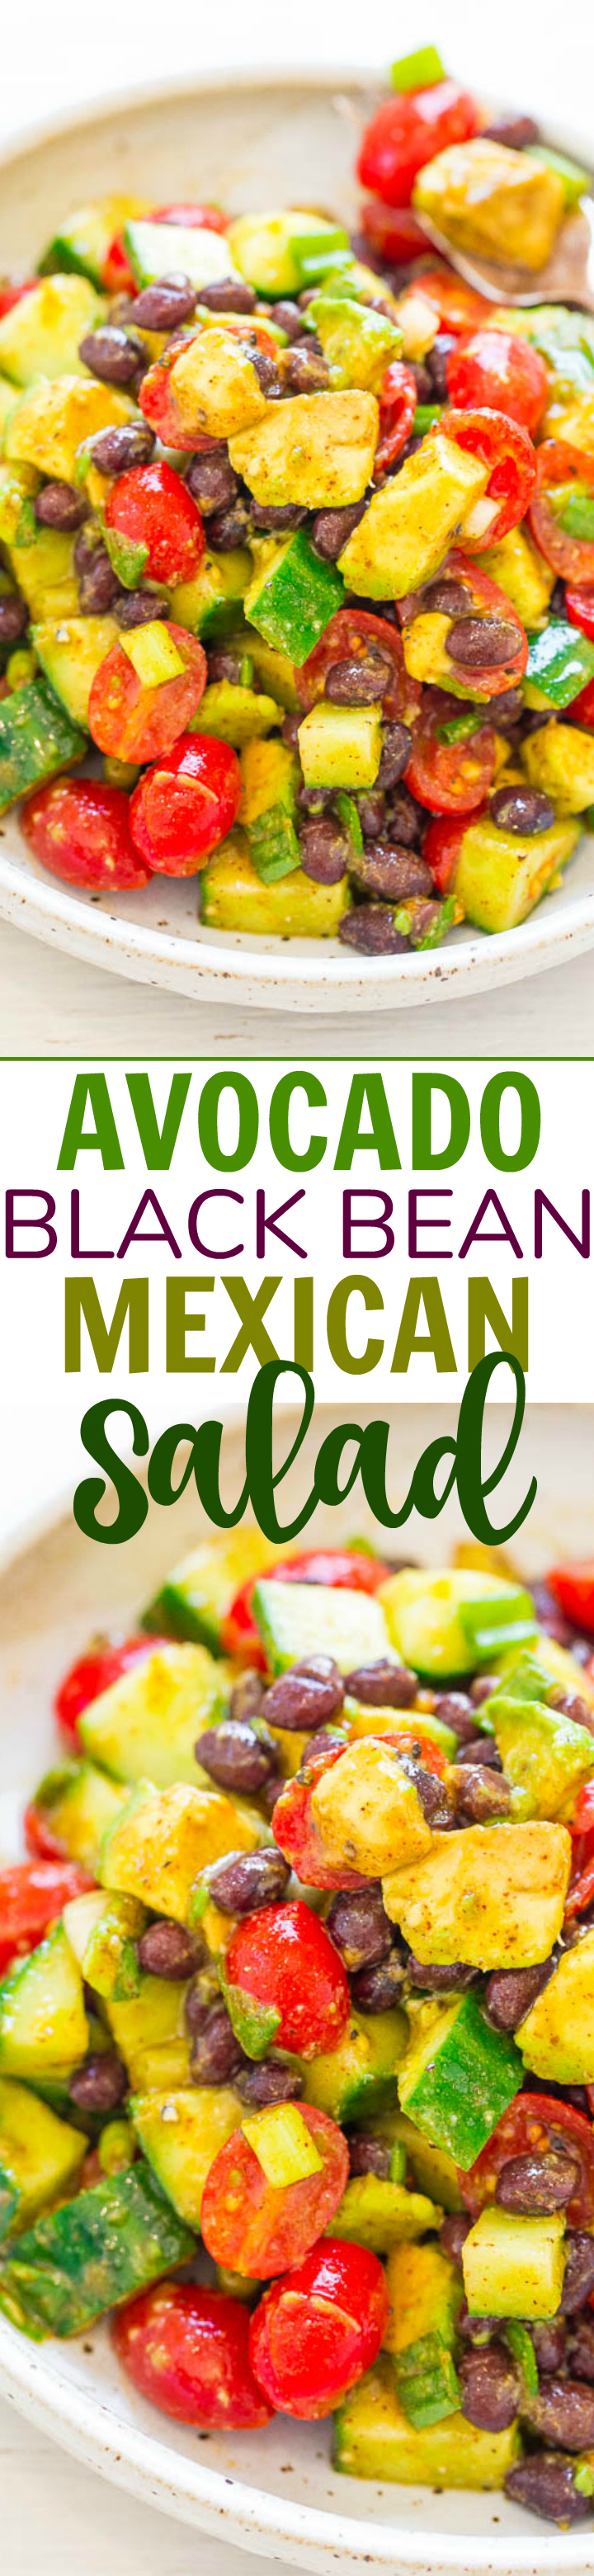 Avocado Black Bean Mexican Salad - EASY, ready in 10 minutes, and there's so much FLAVOR from the lime-cumin-chili vinaigrette!! Great for lunch or a meatless Monday dinner! Accidentally vegan, gluten-free, HEALTHY, and DELISH!!